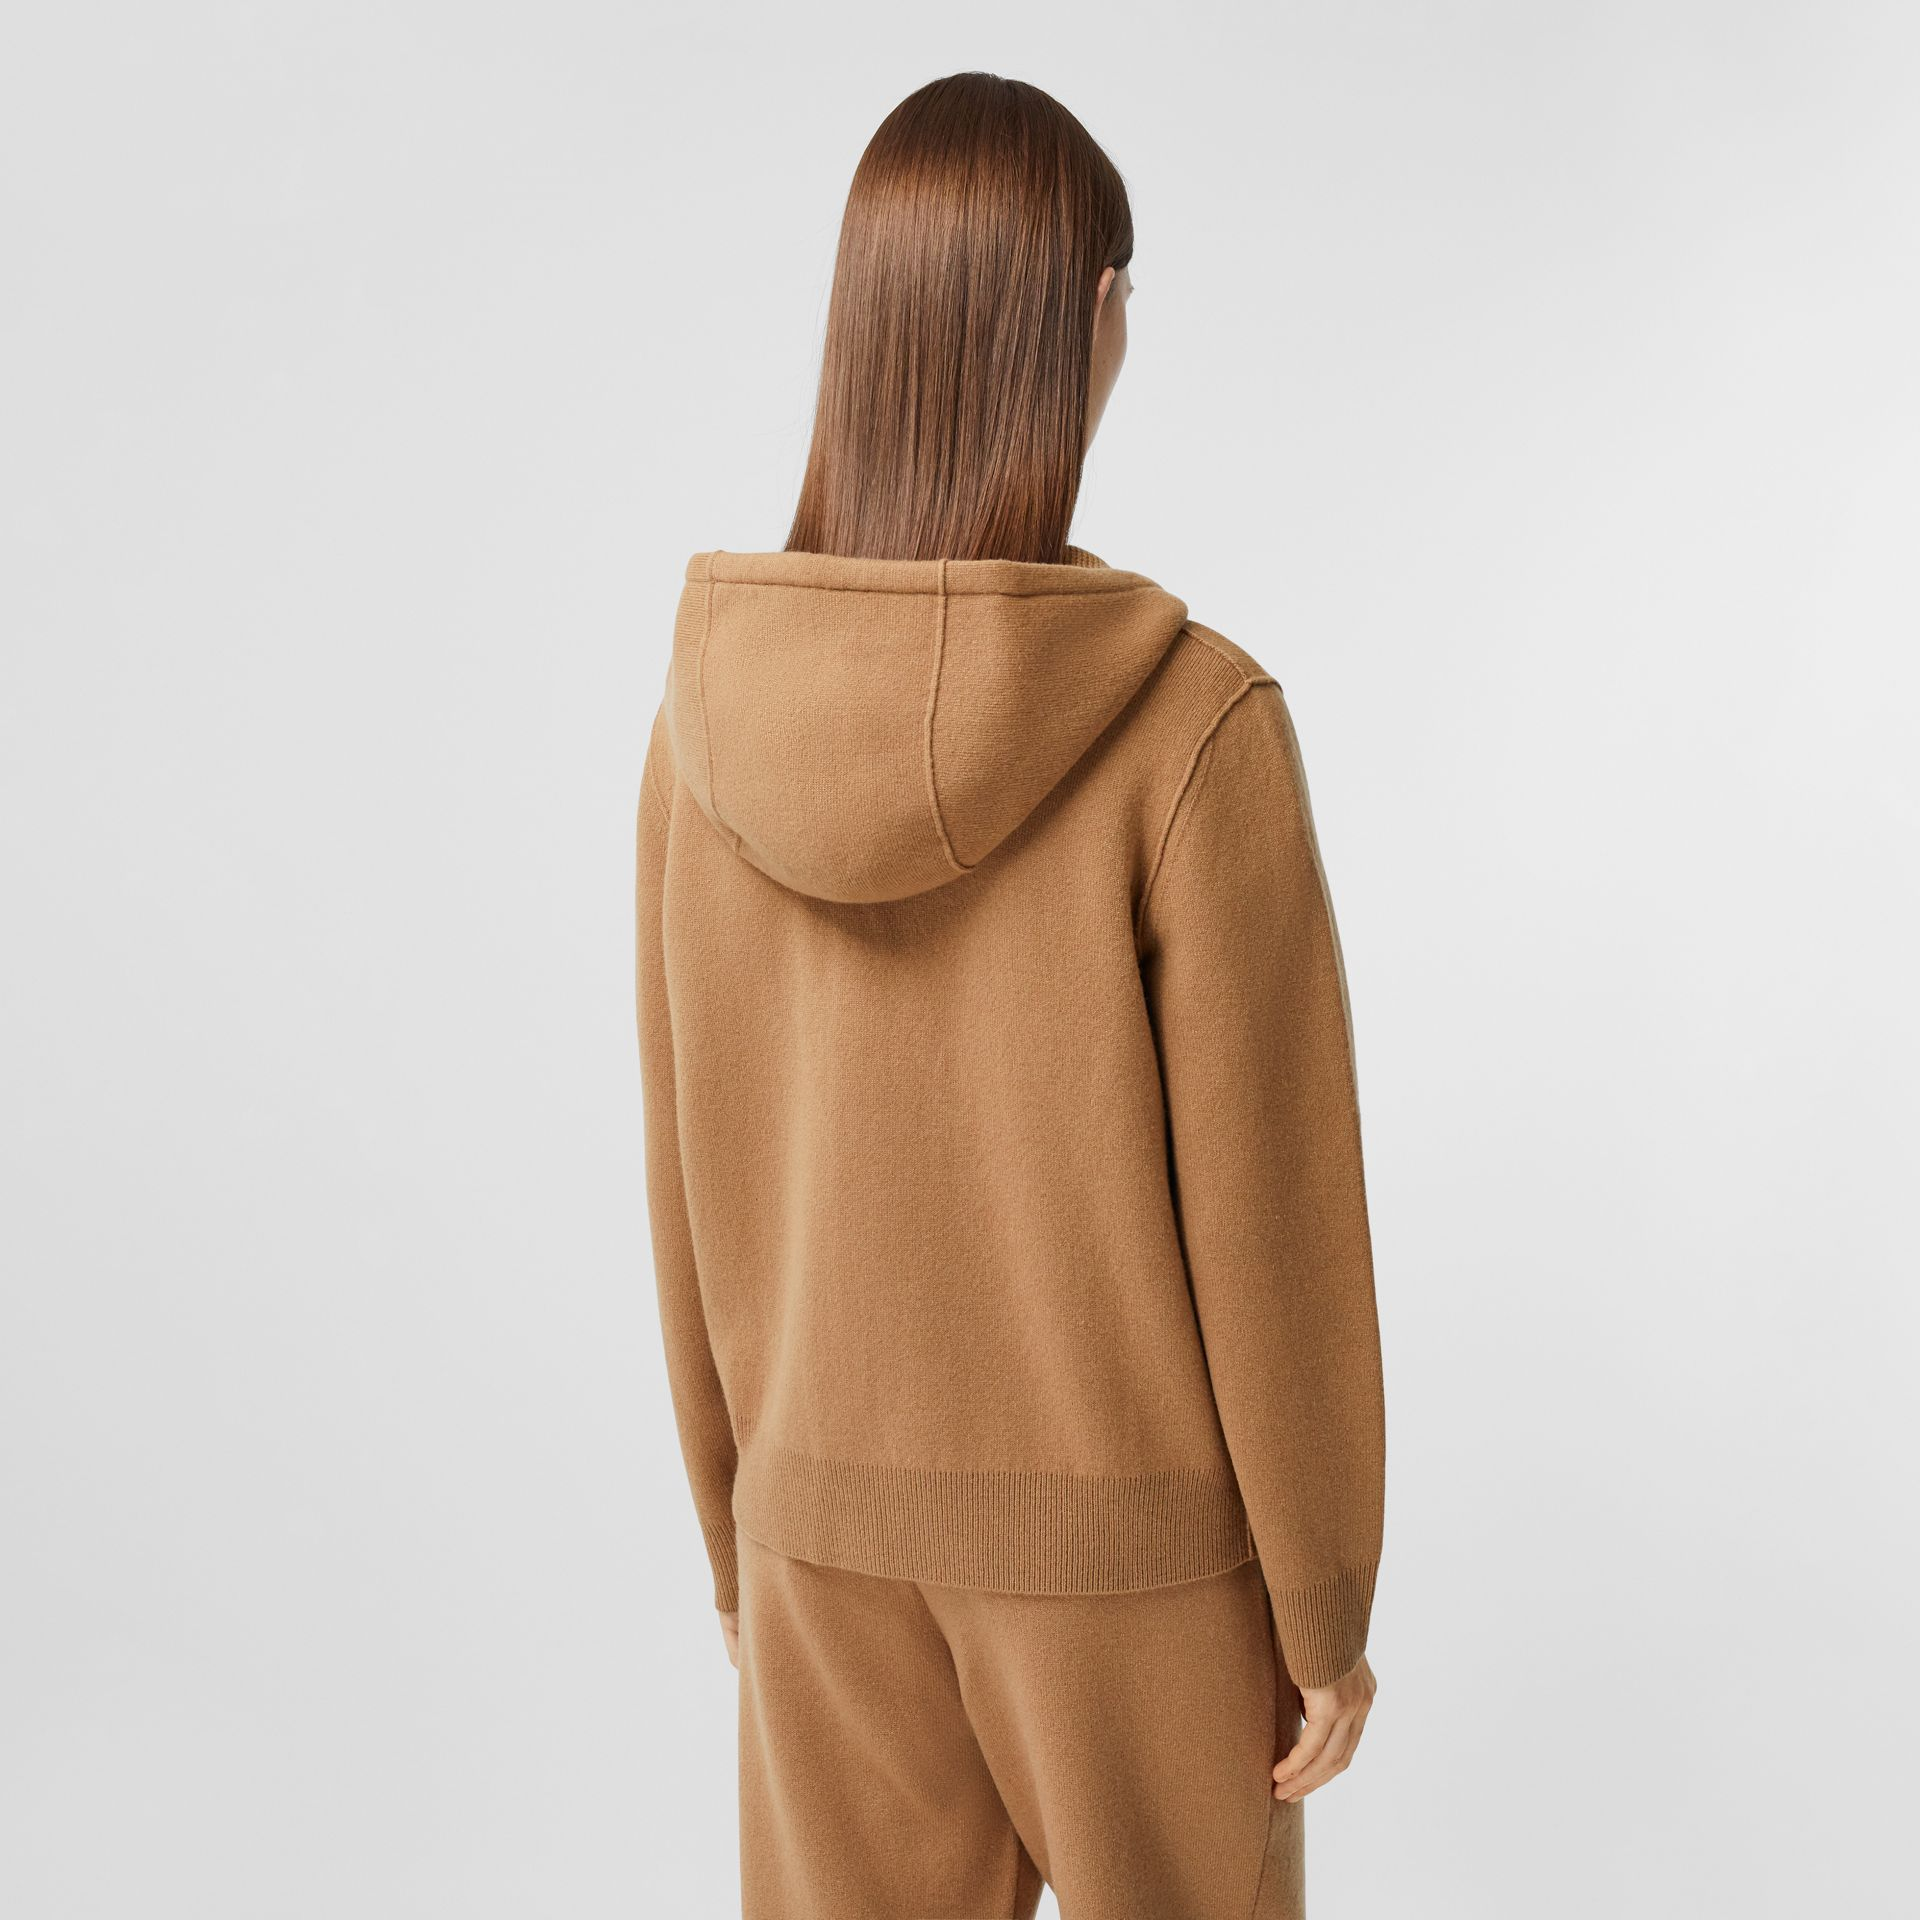 Monogram Motif Cashmere Blend Hooded Top in Camel - Women | Burberry - gallery image 2